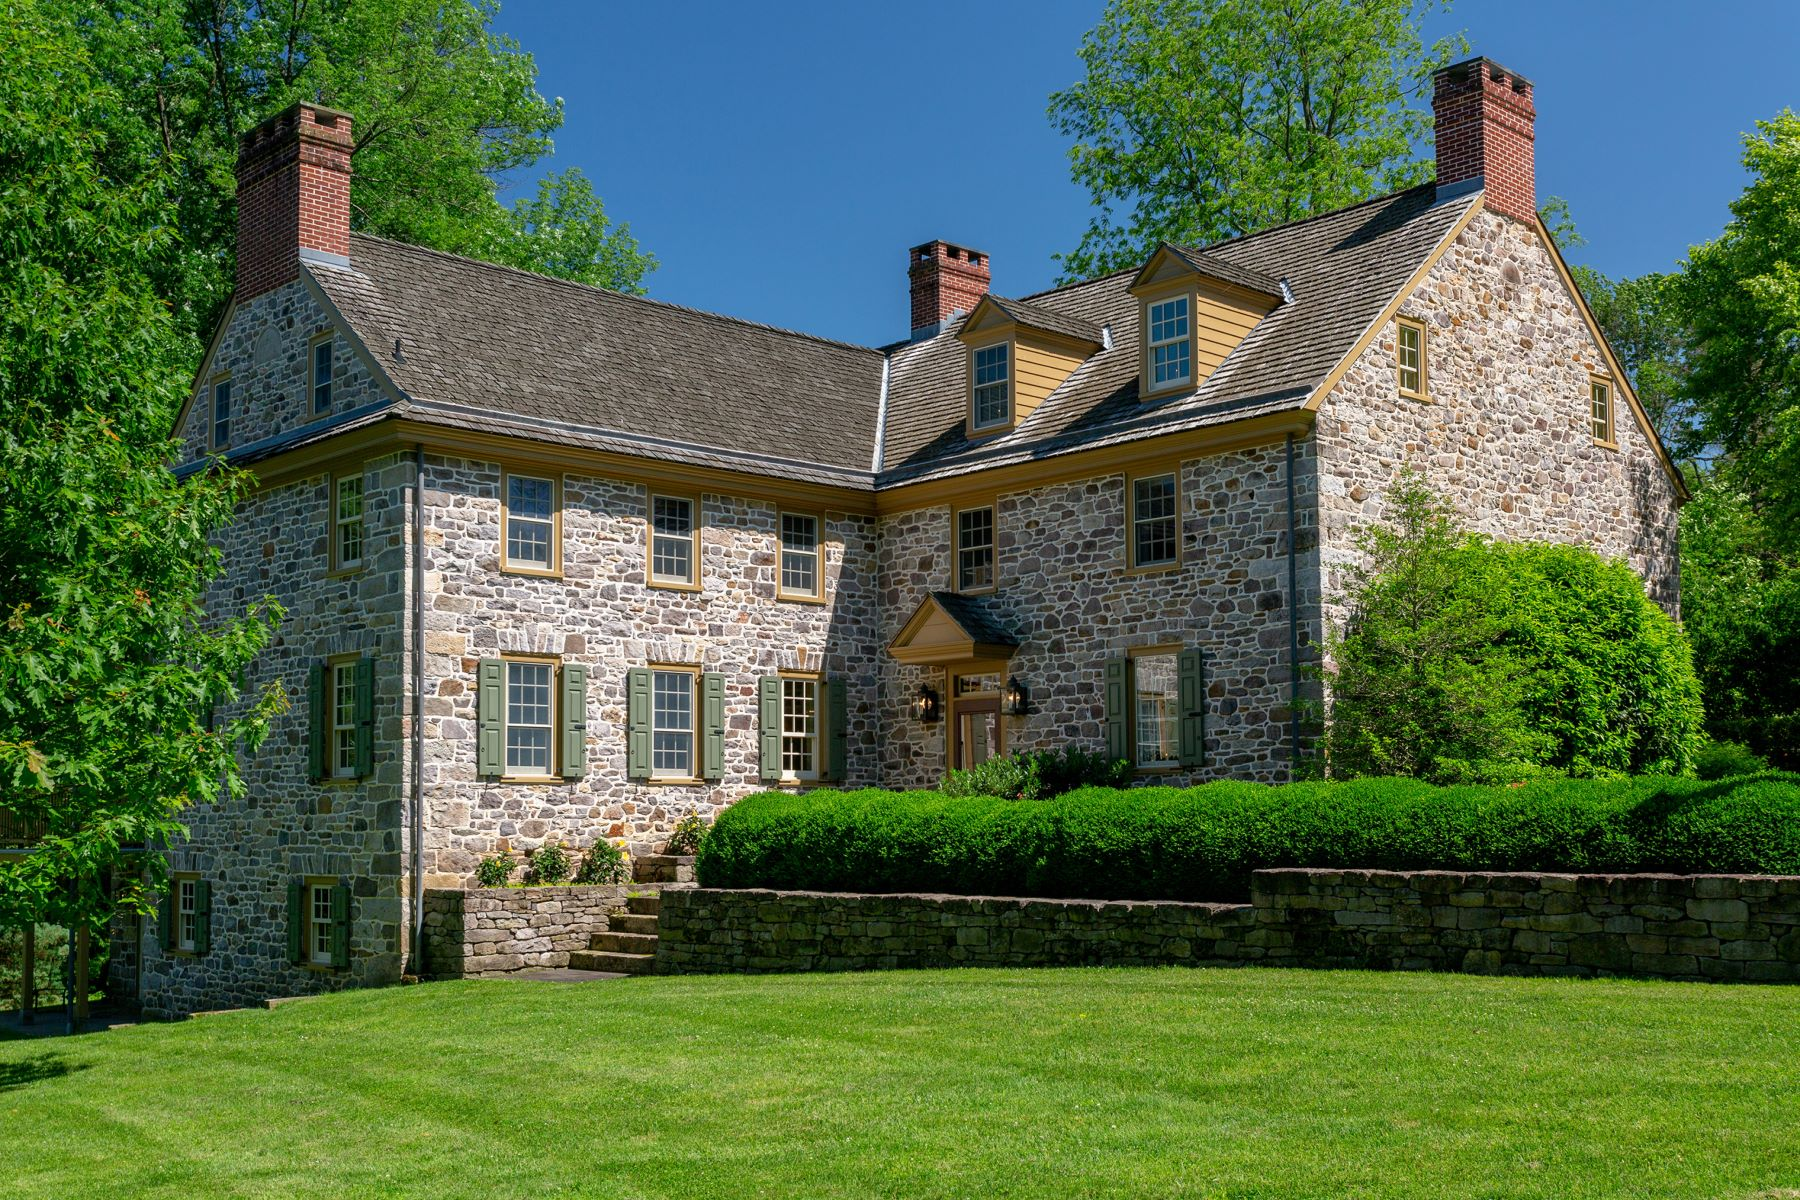 Single Family Homes for Sale at New Hope, Pennsylvania 18938 United States